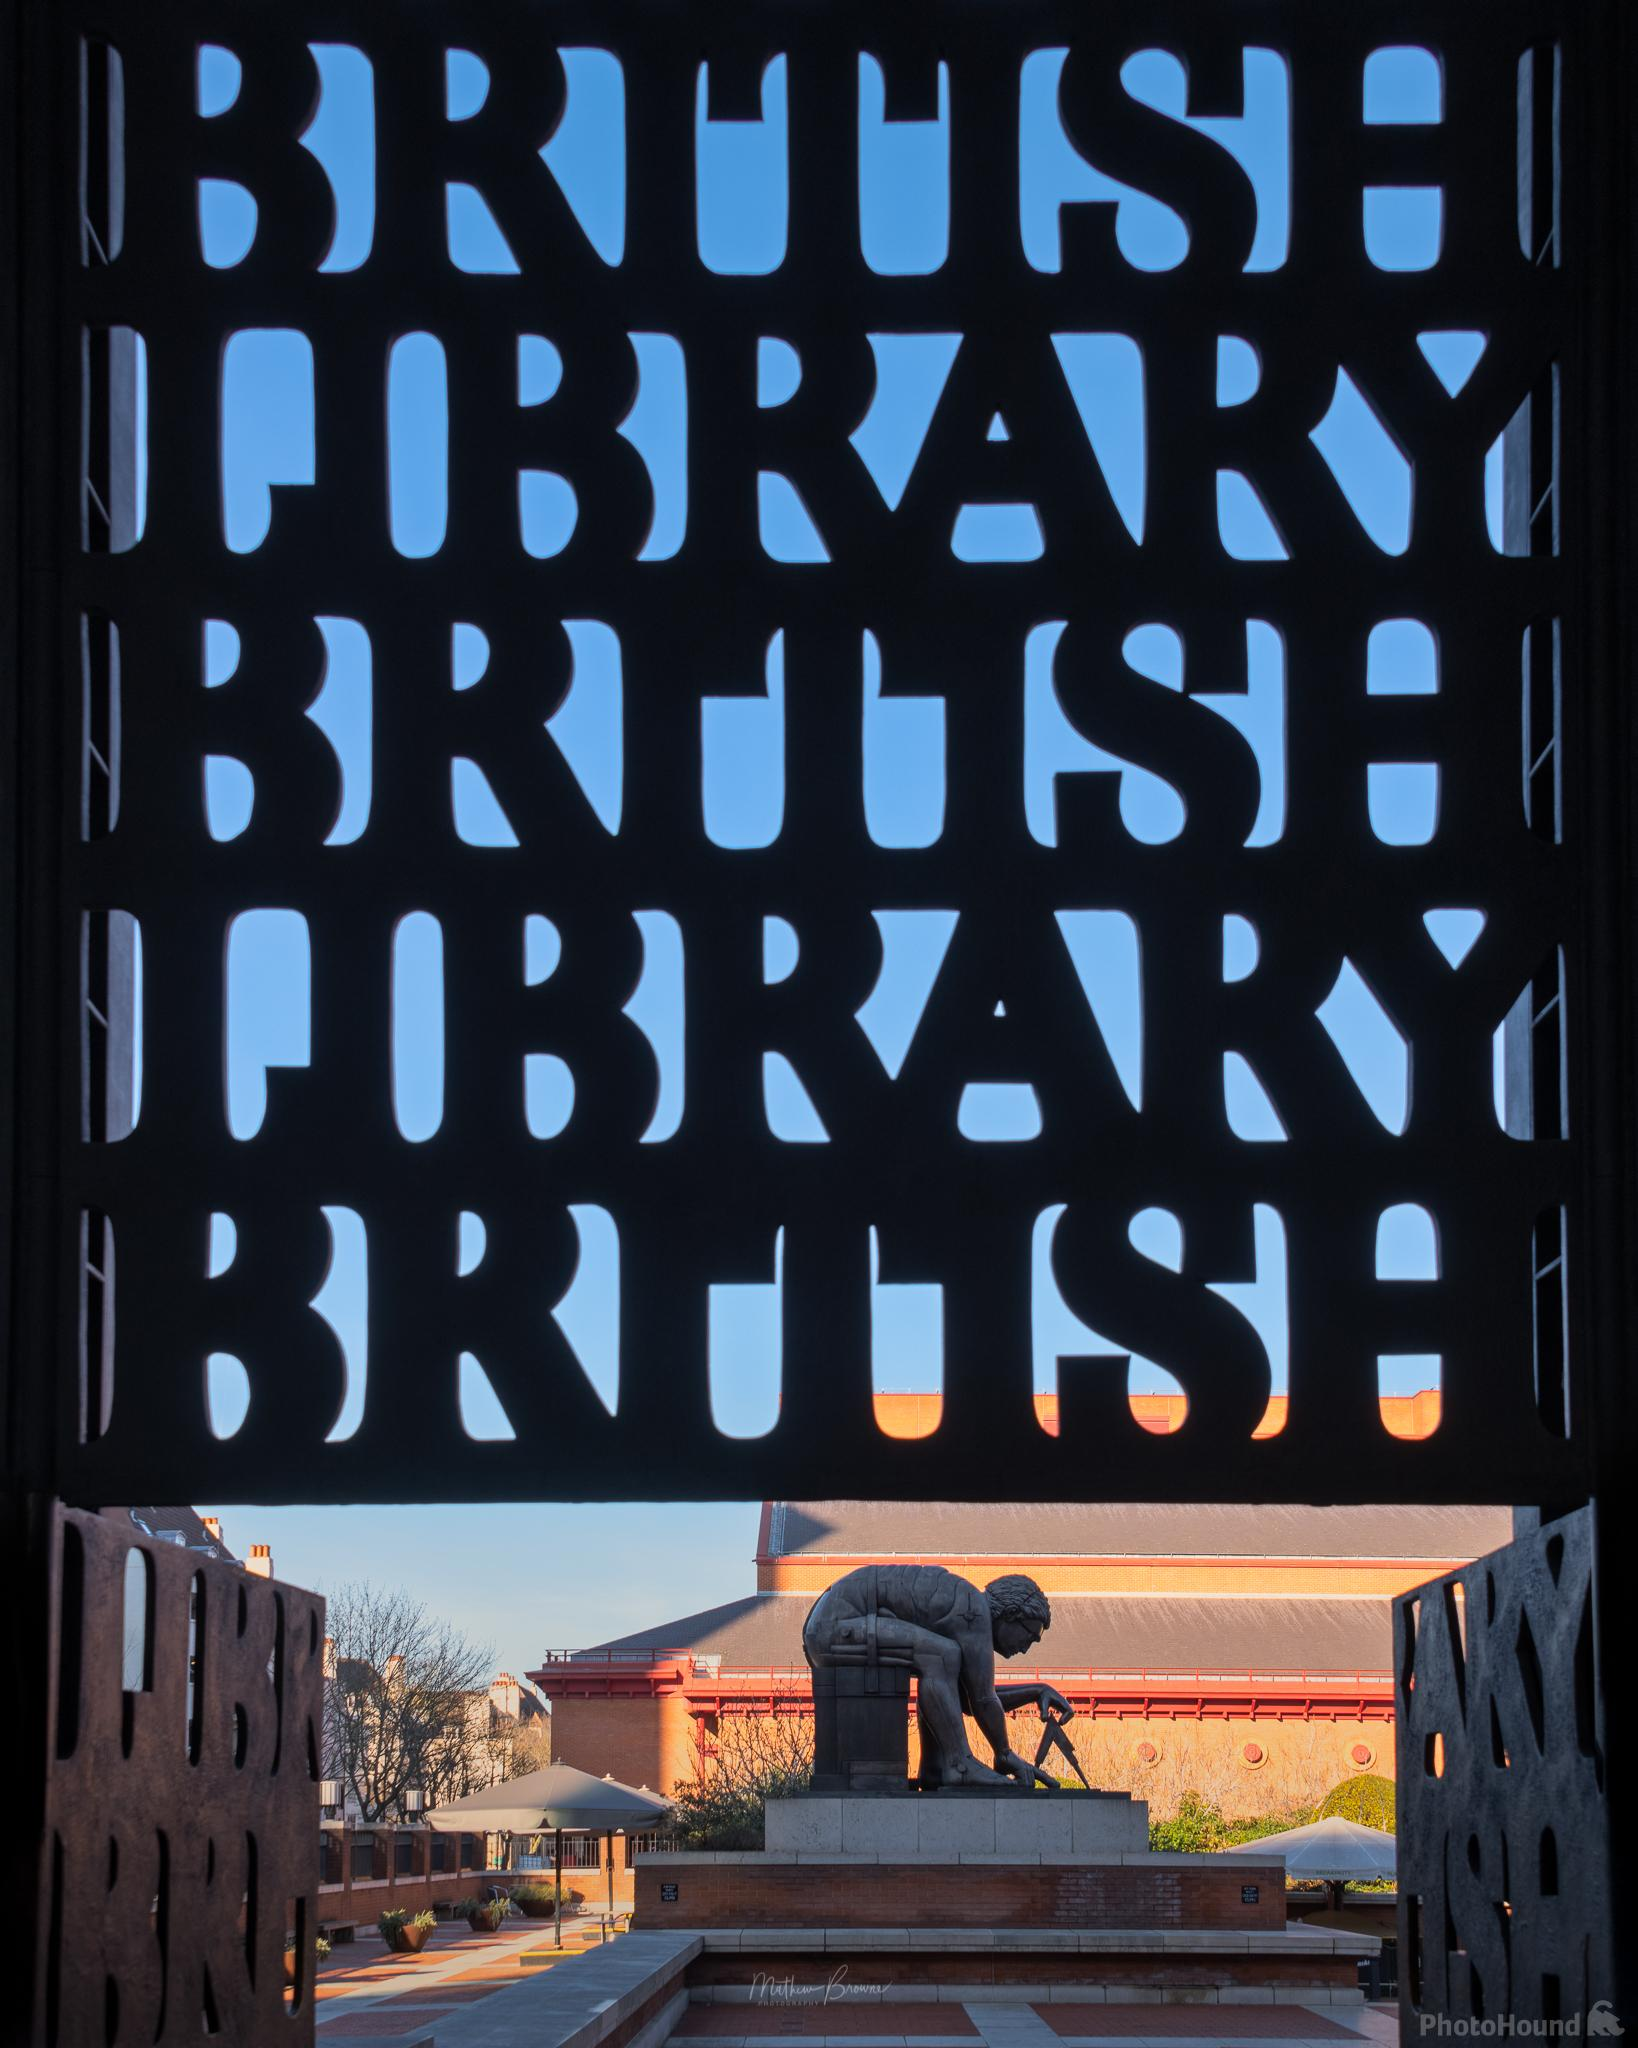 Entrance gate to the British Library